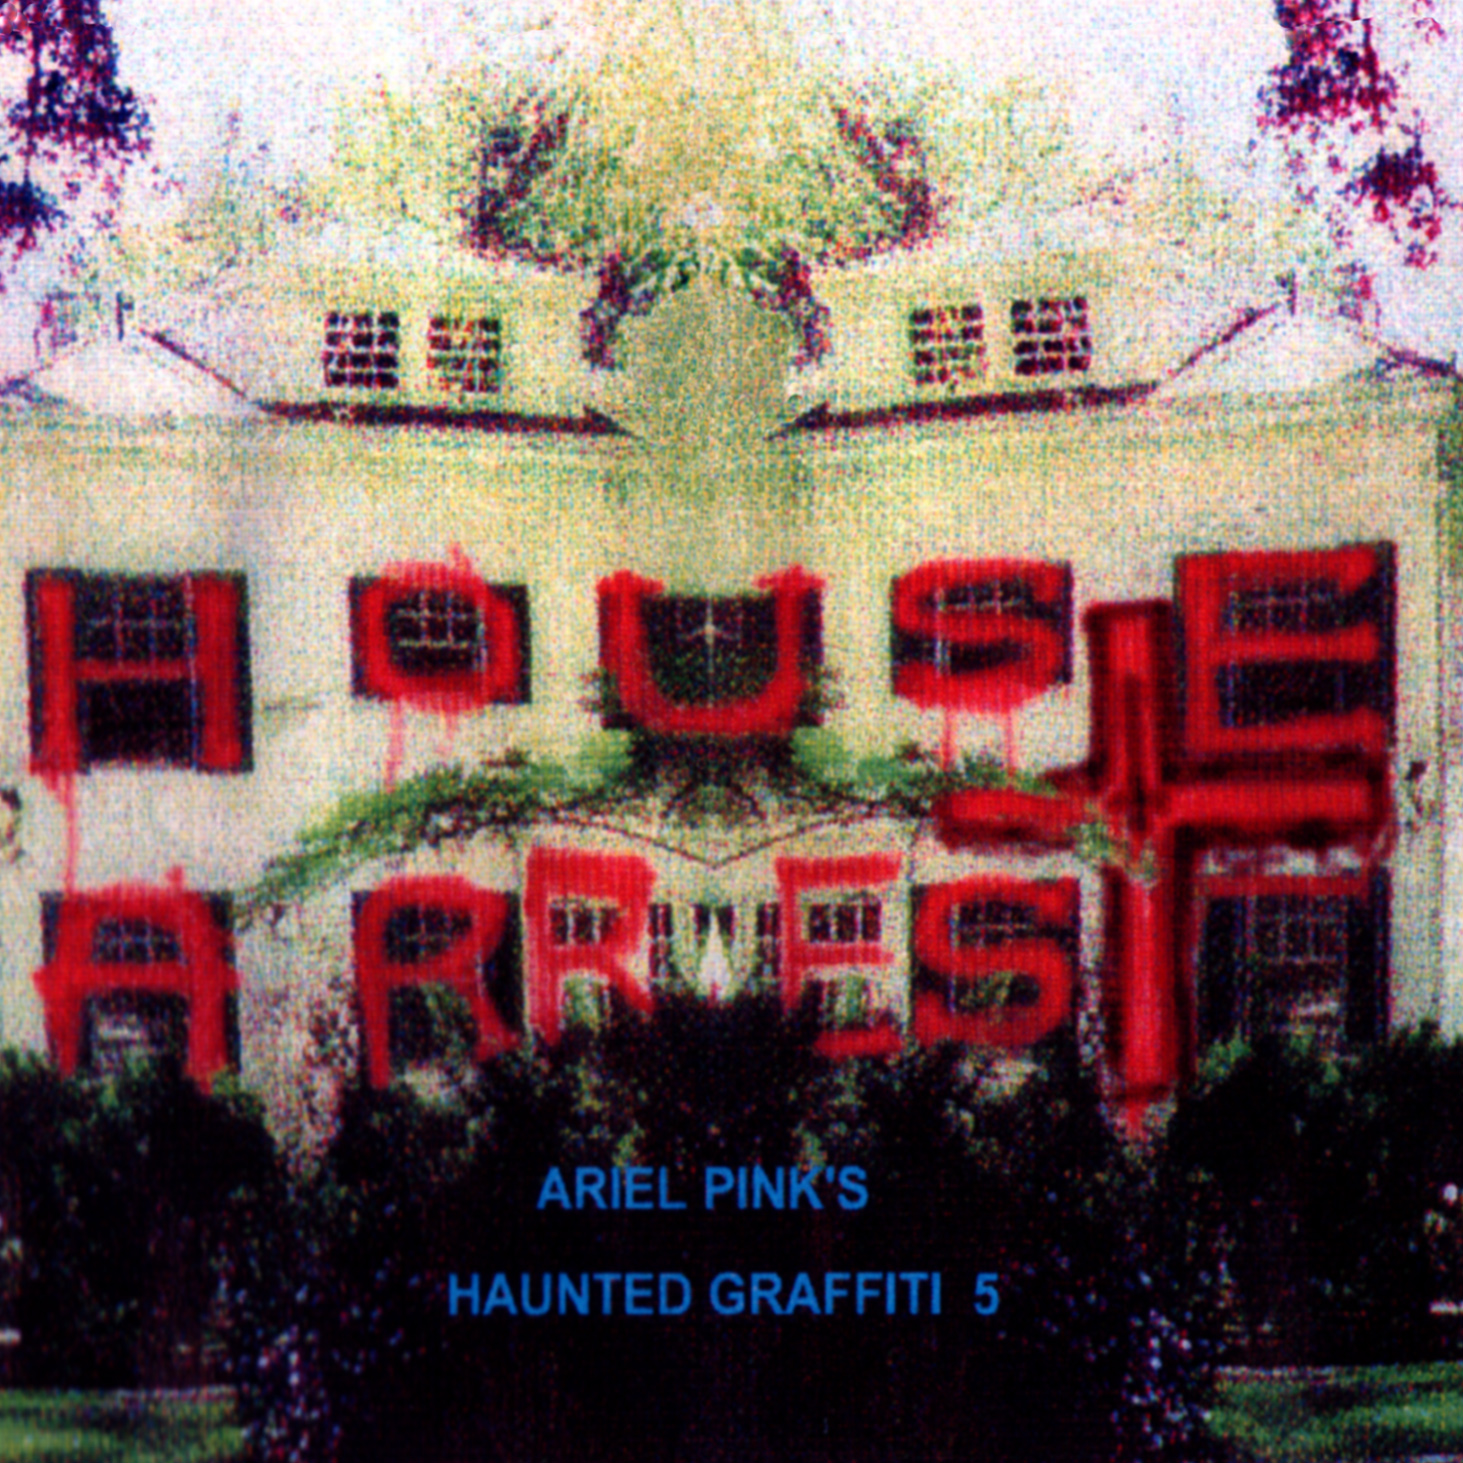 Ariel Pink S Haunted Graffiti 5 House Arrest Paw Tracks 2006 Release Weirdo Music Forever